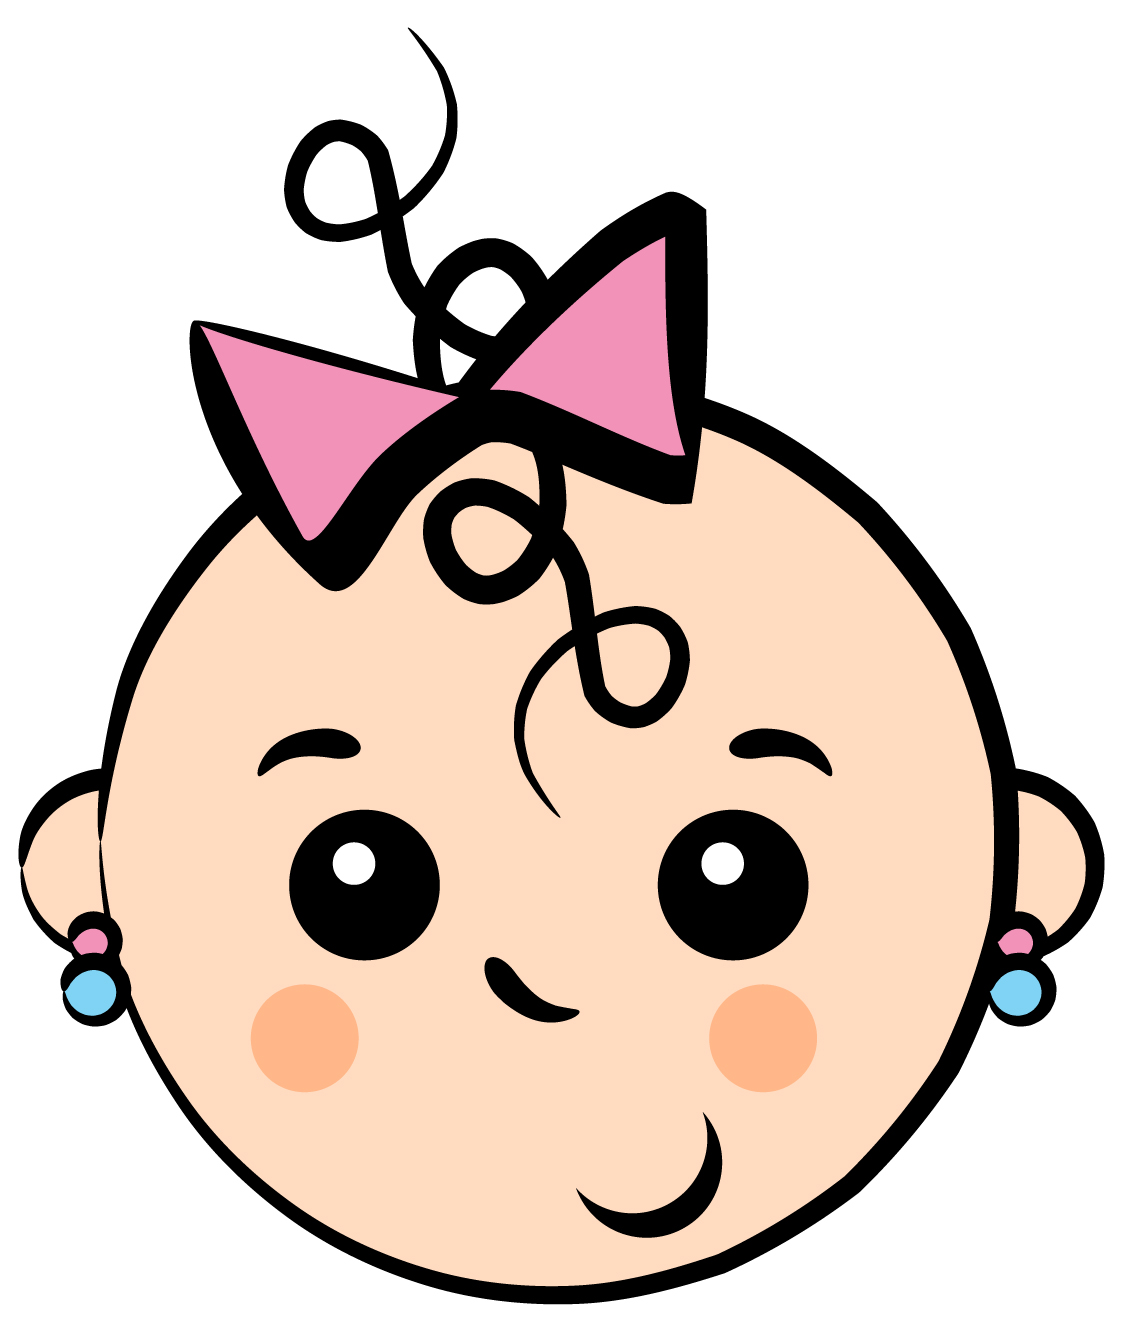 1124x1340 Crawling Baby Wearing A Diaper Clipart